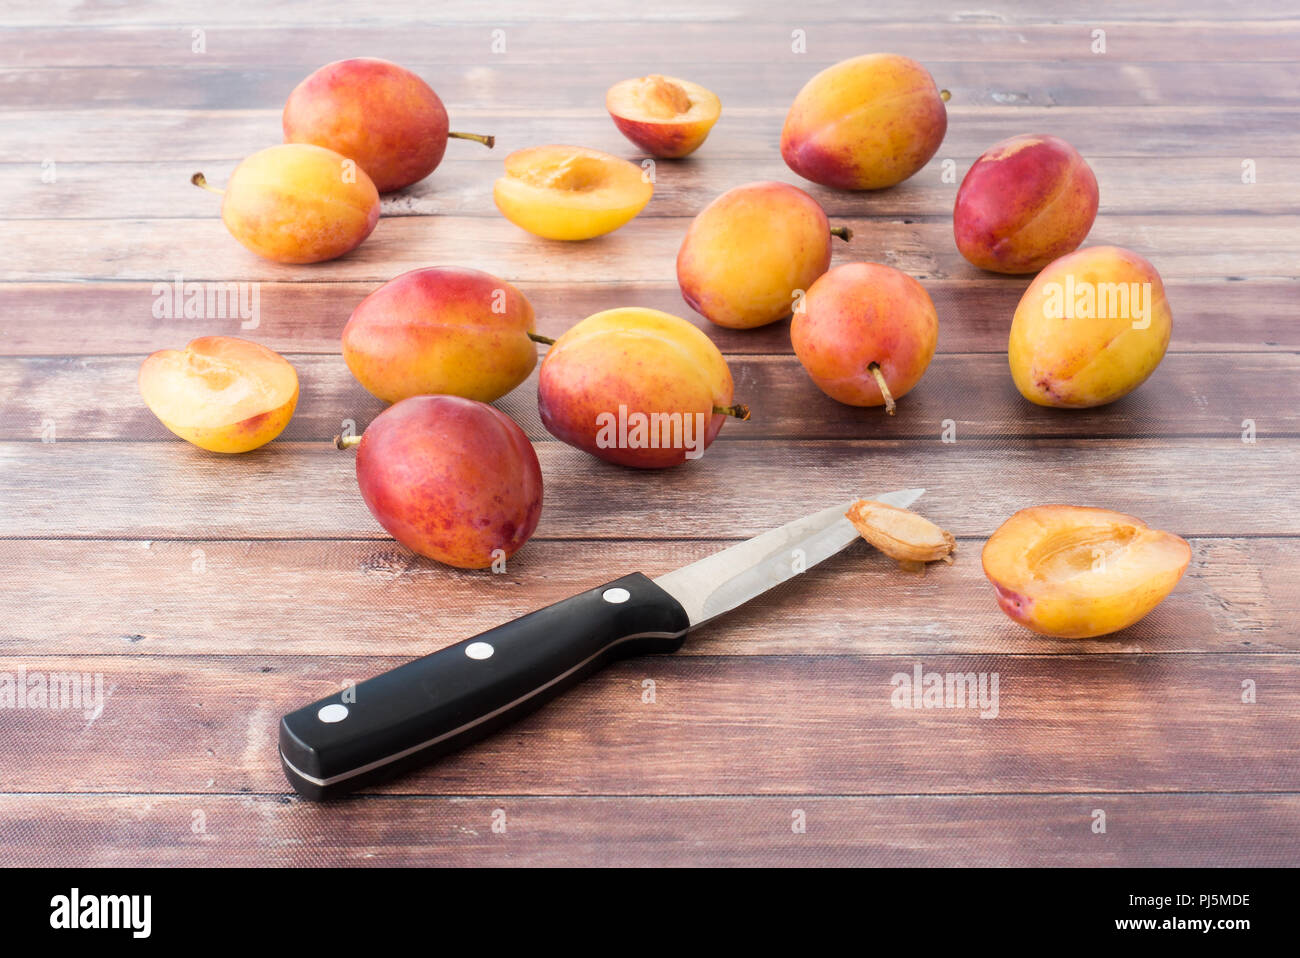 Whole and halved British Victoria plums on dark brown rustic wood panel background. Stock Photo